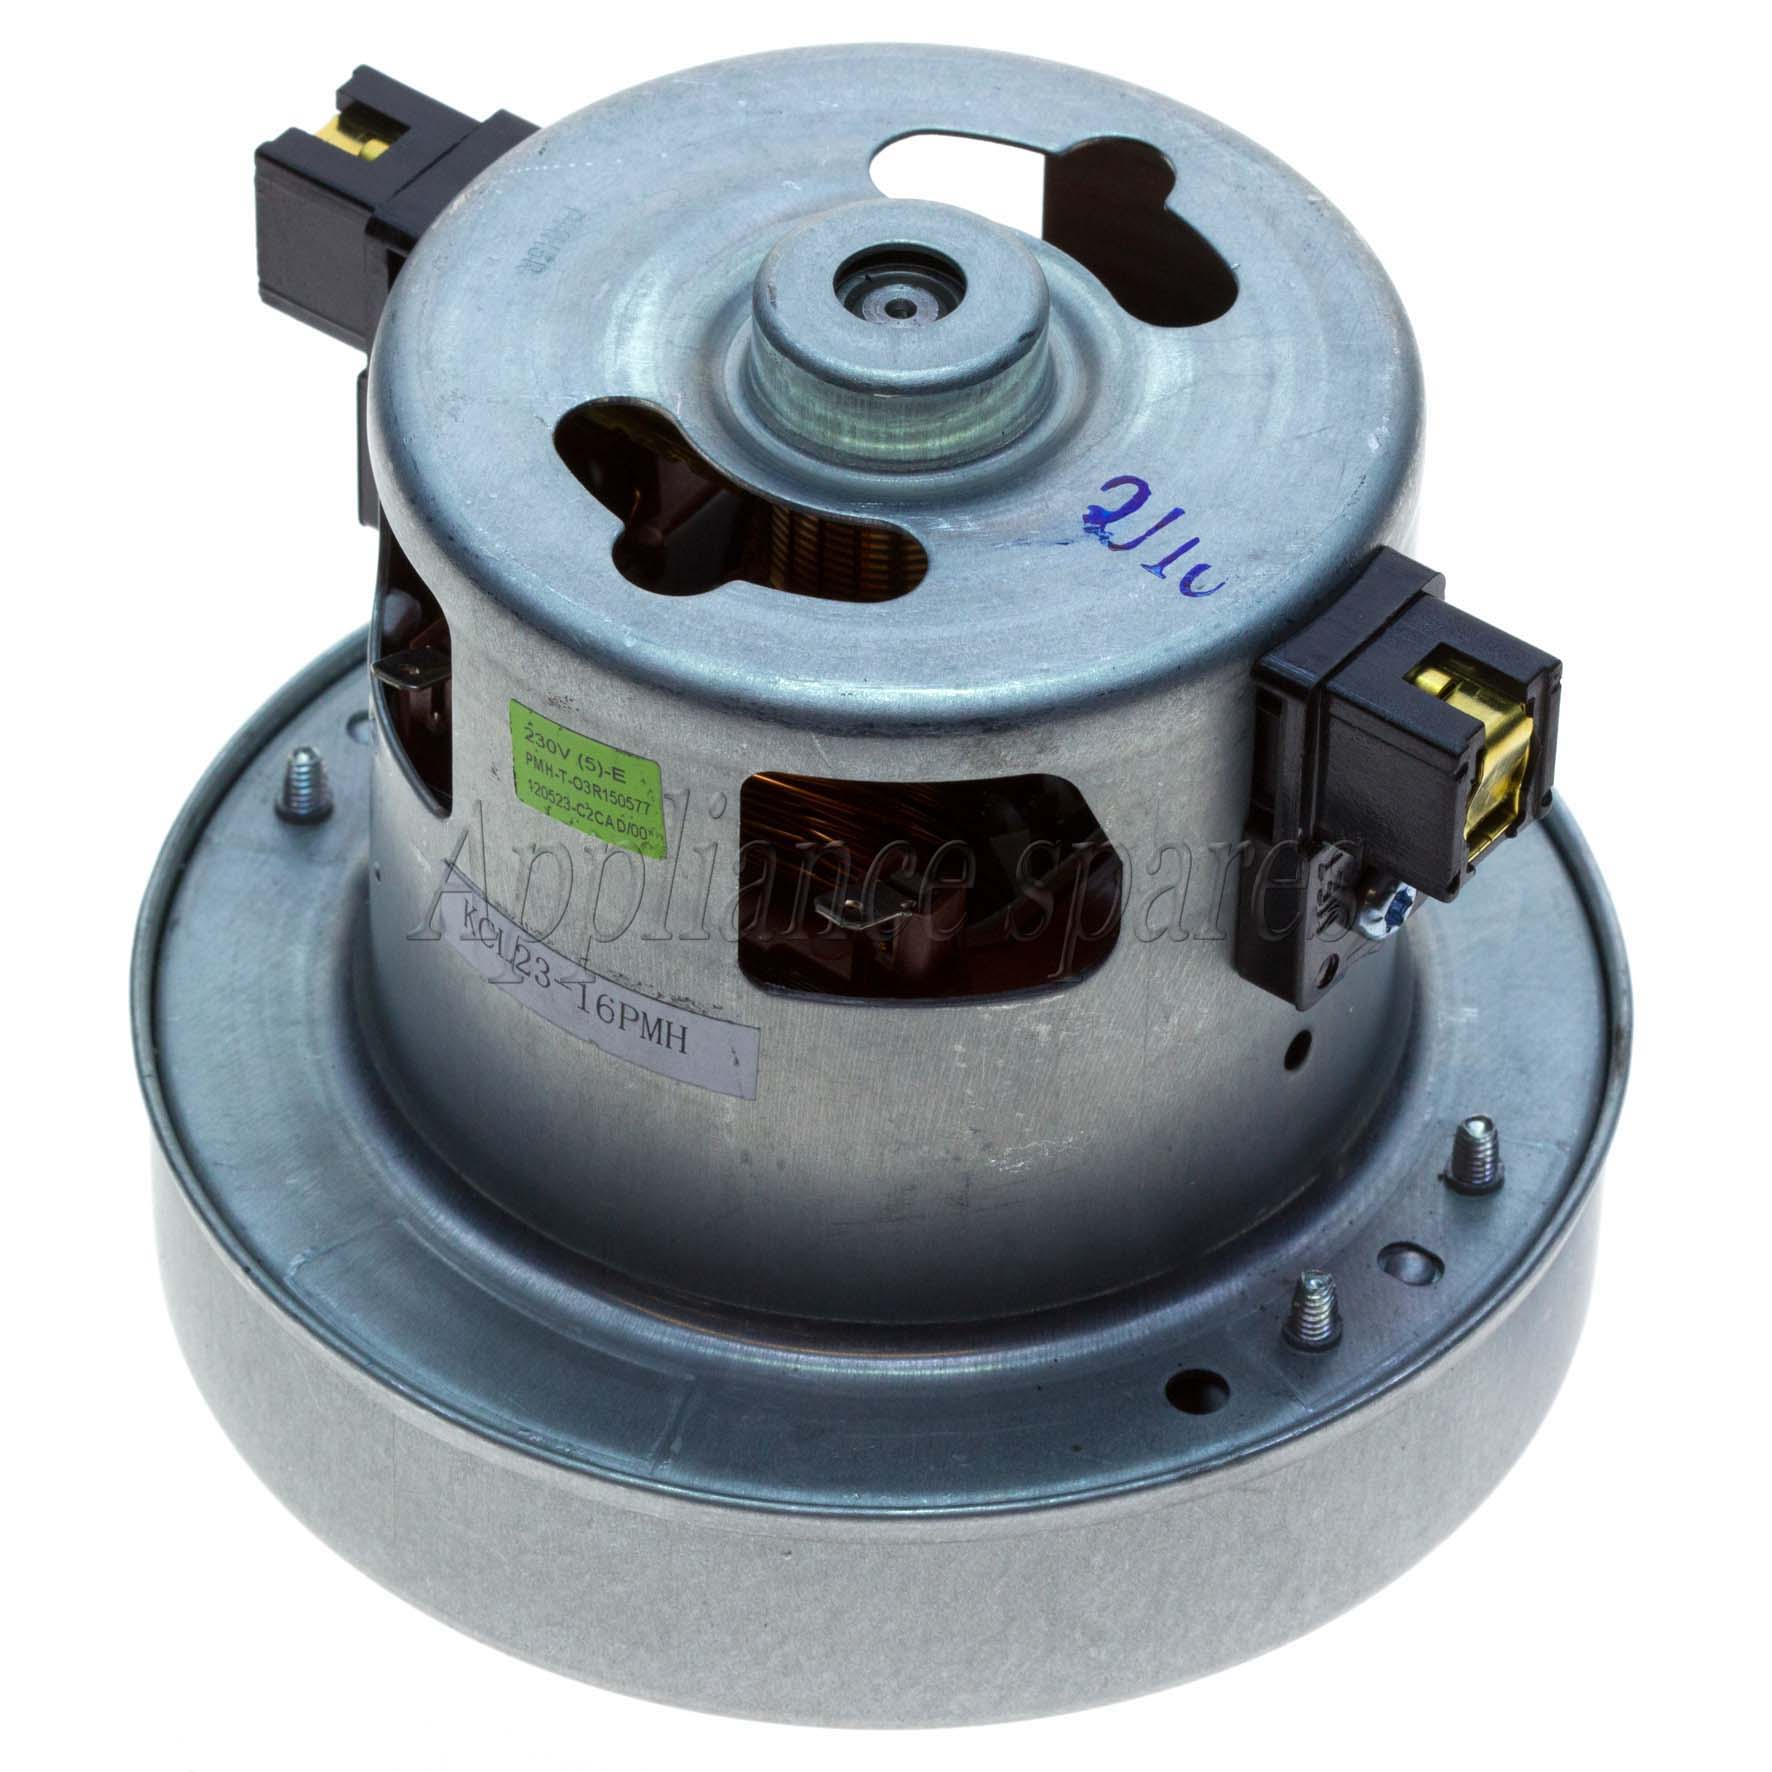 electrolux vacuum parts. electrolux vacuum cleaner motor | lategan and van biljoens appliance spares, parts accessories electrolux vacuum